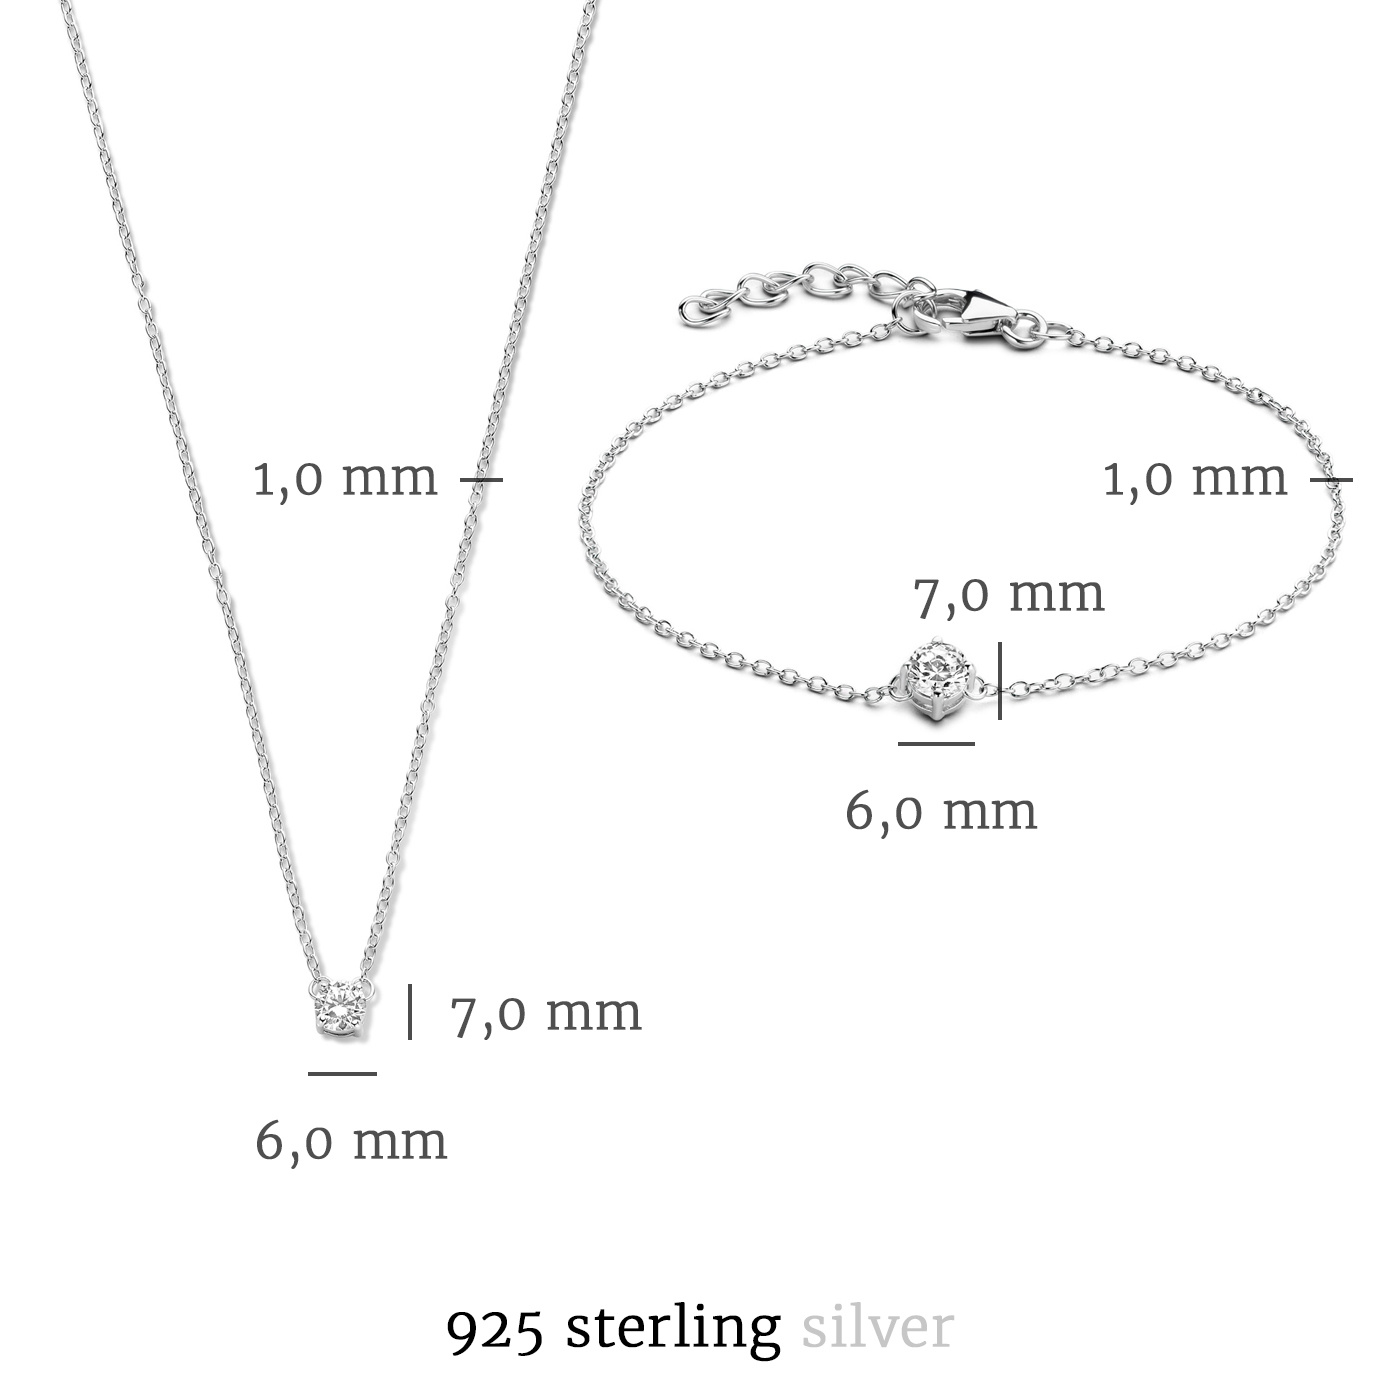 Selected Jewels Selected Gifts 925 sterling silver set bracelet and necklace with zirconia